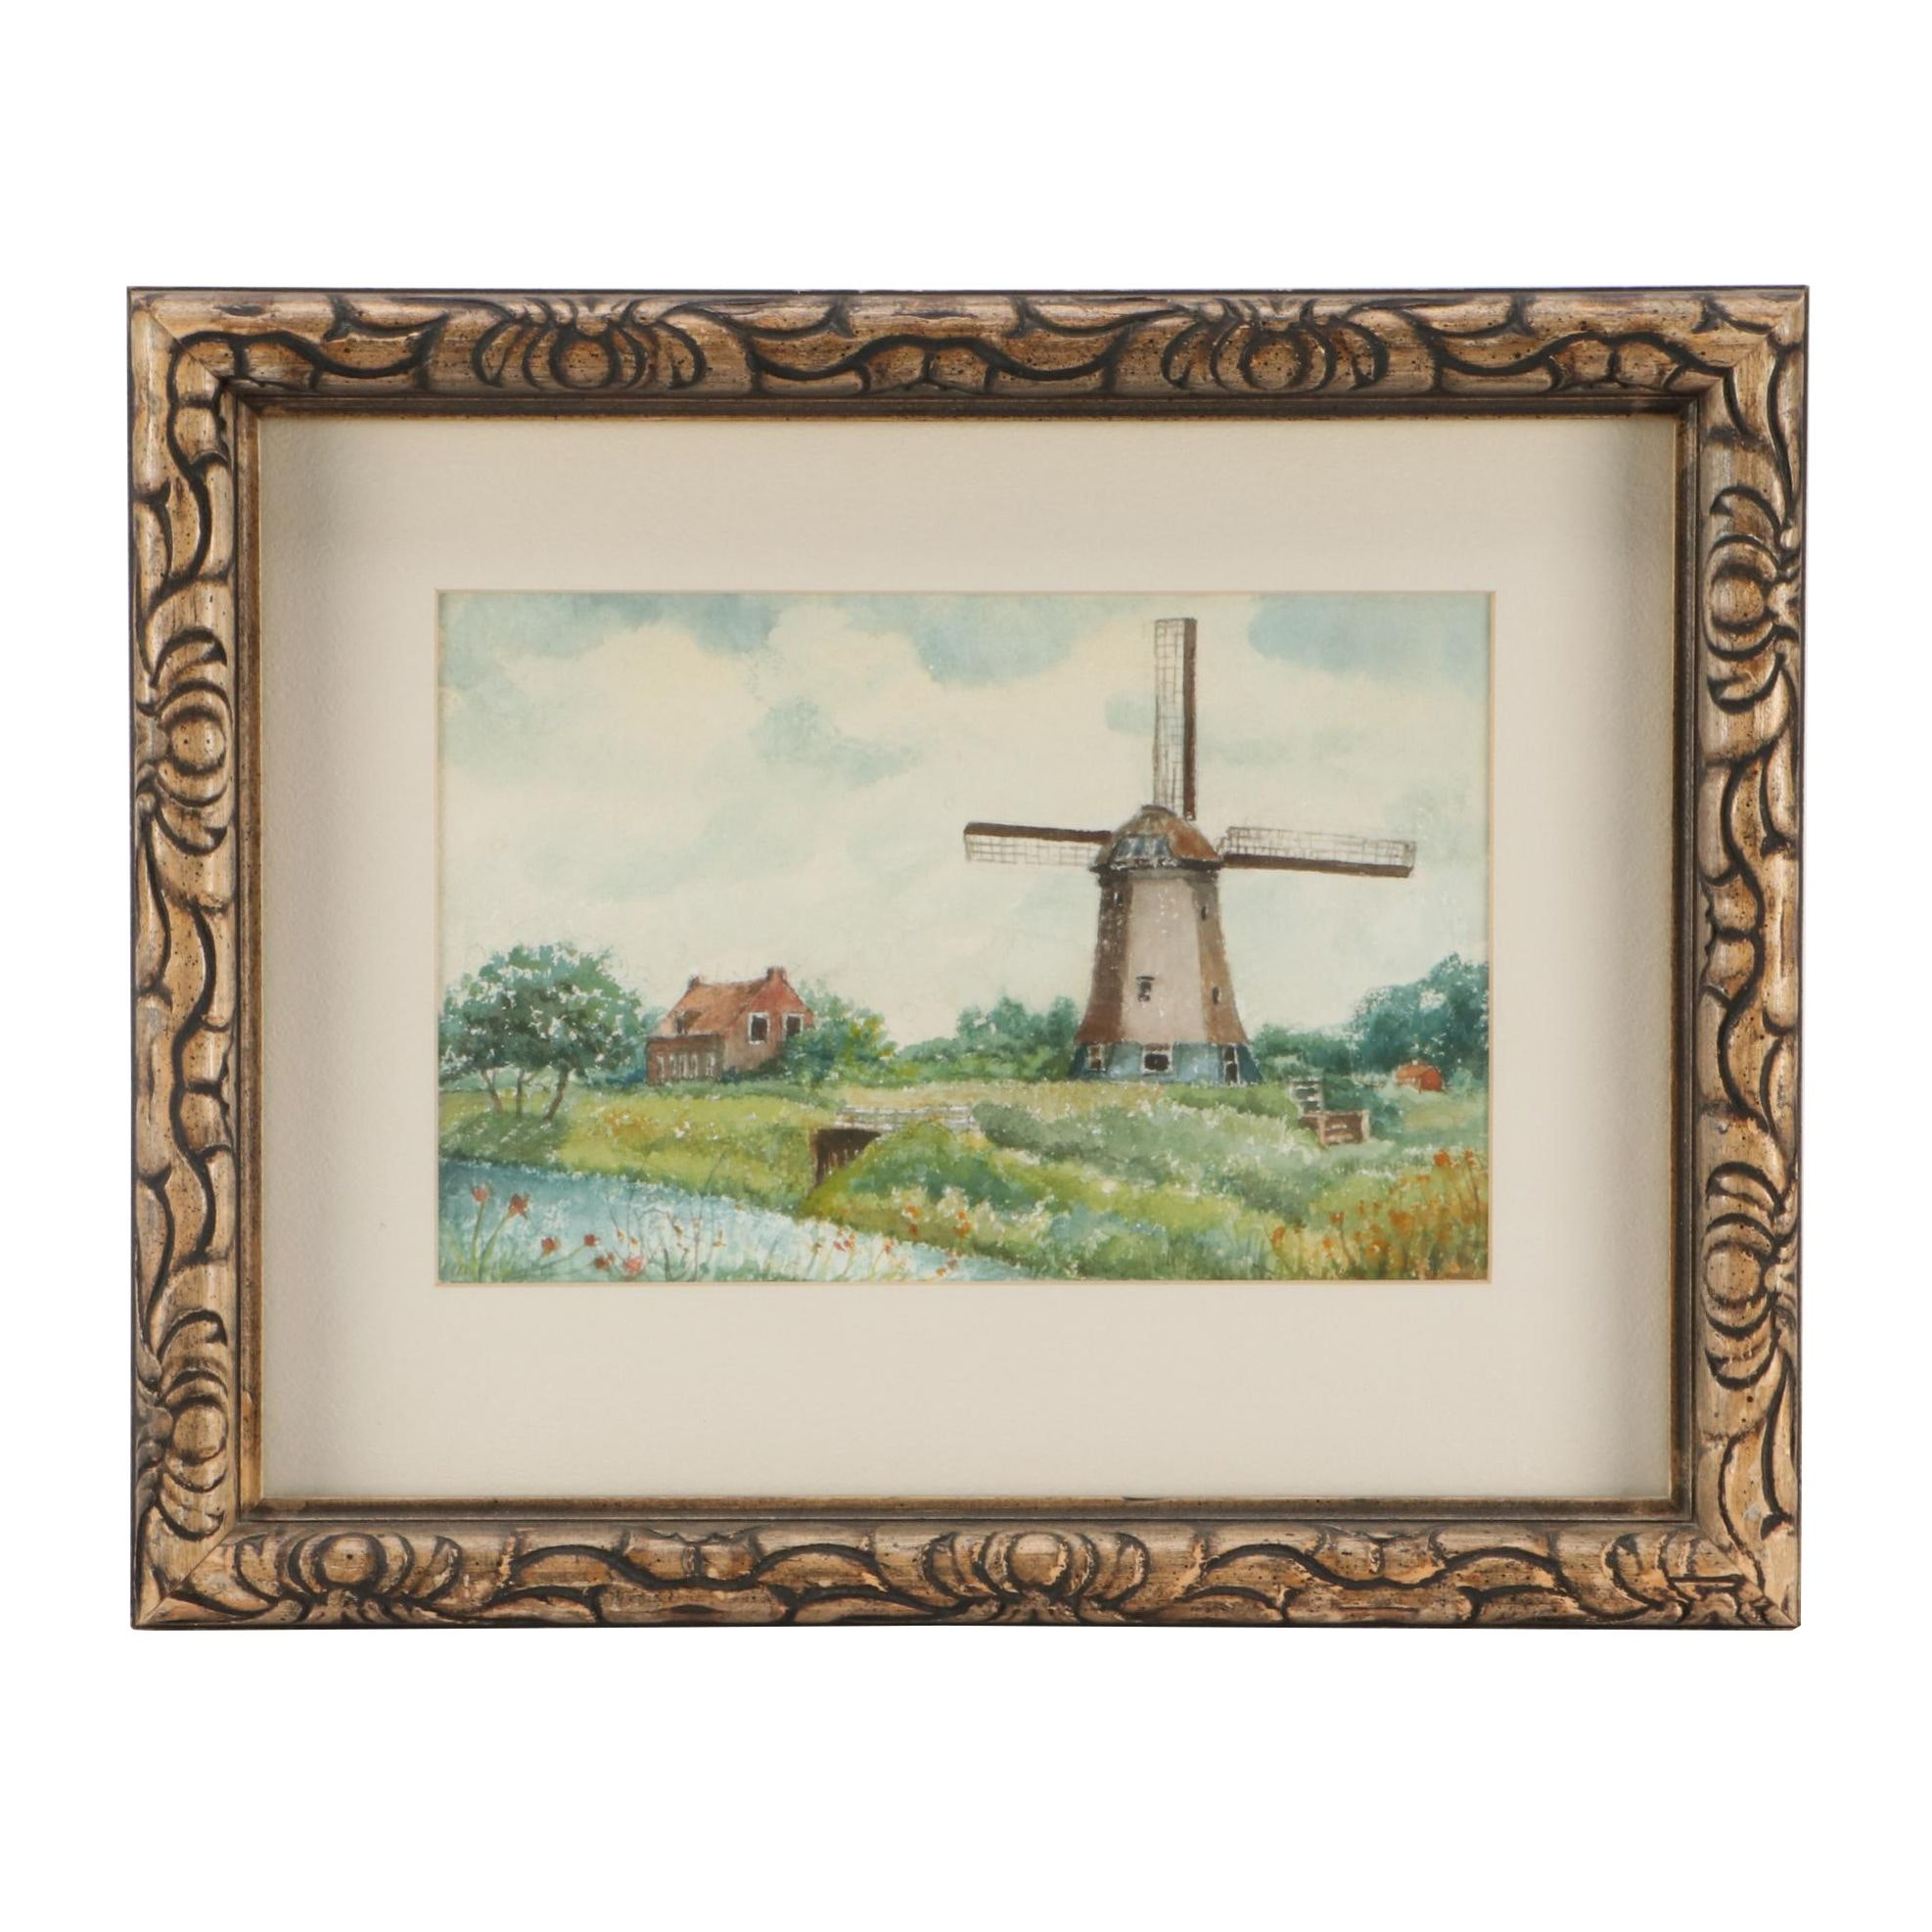 Watercolor Painting of Windmill in Landscape